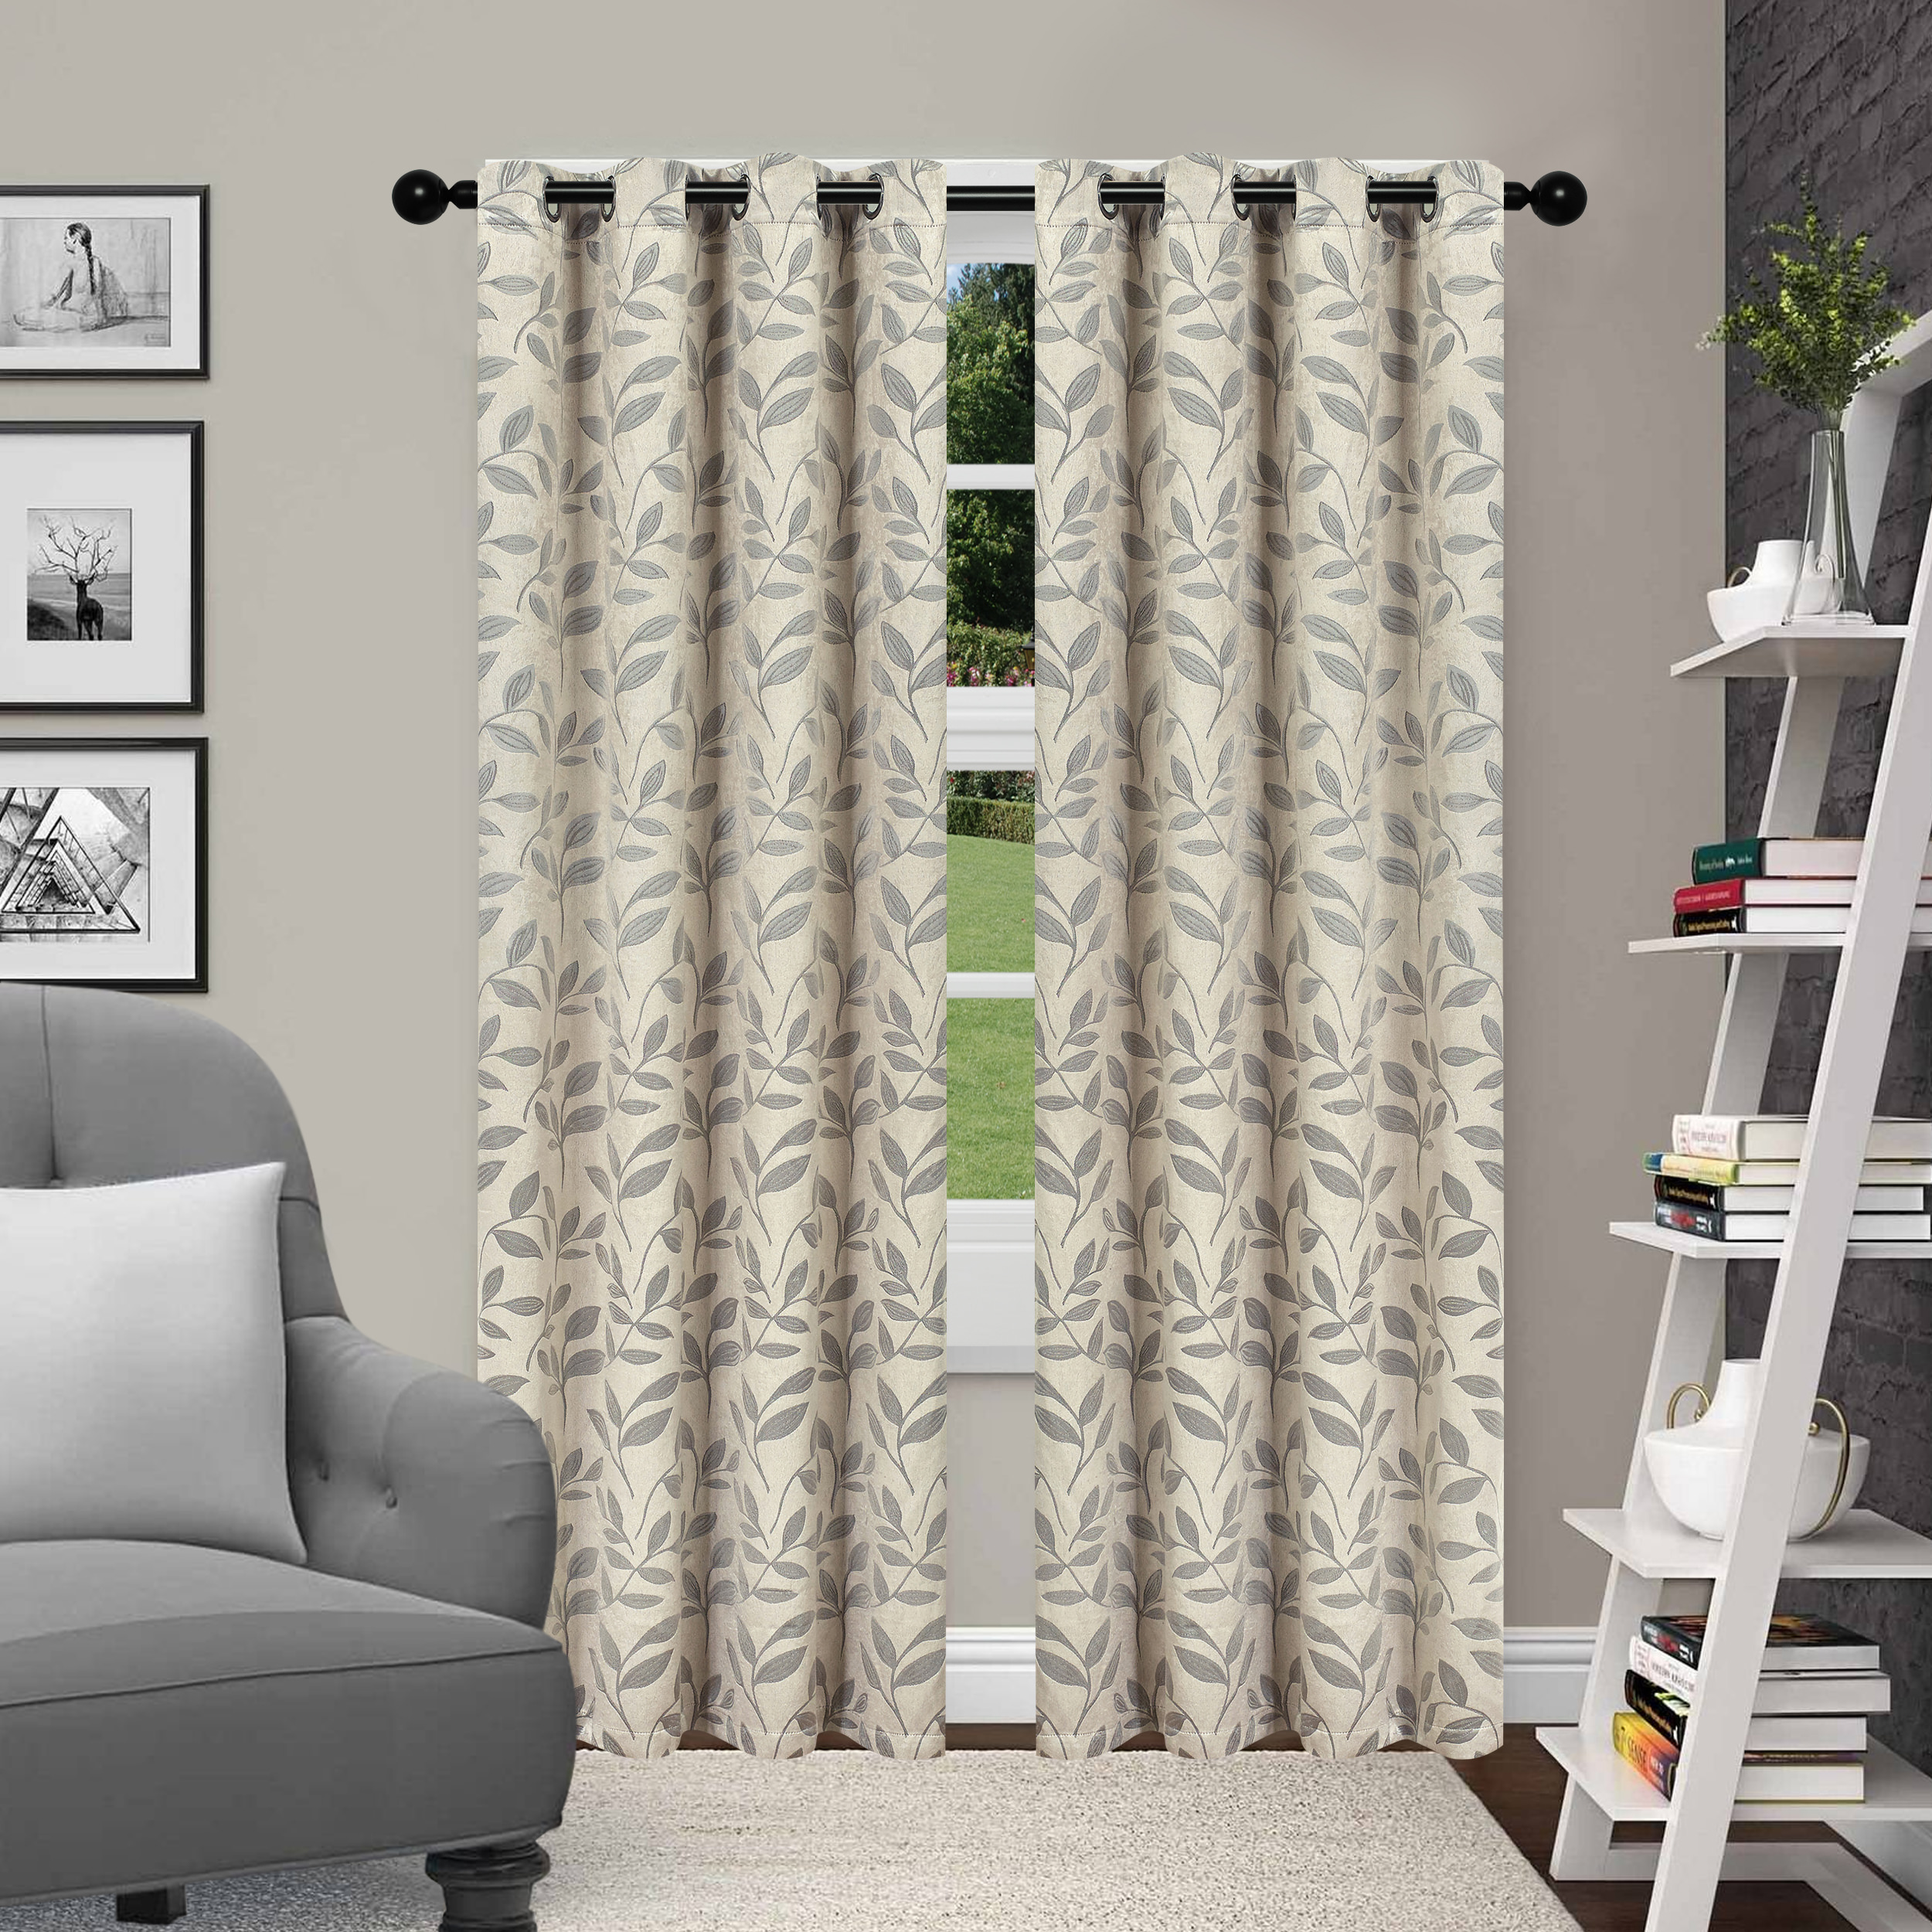 Superior Leaves Textured Blackout Curtain Set of 2 with Grommet Top Header